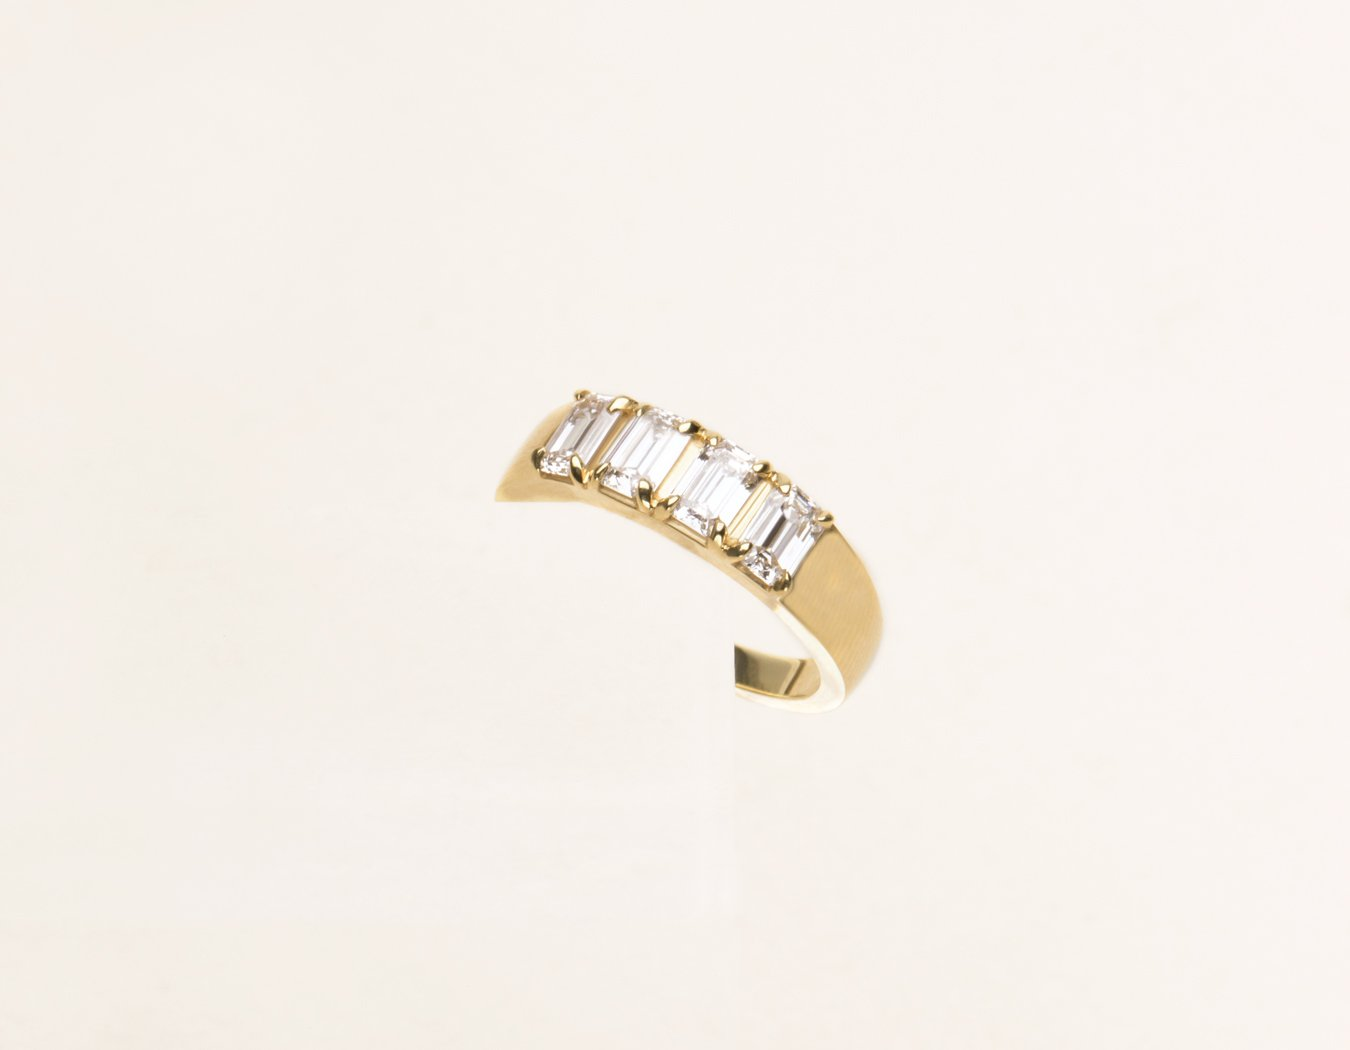 Classic minimalist 14k solid gold Emerald cut Diamond Tetrad Band by Vrai & Oro sustainable jewelry, 14K Yellow Gold